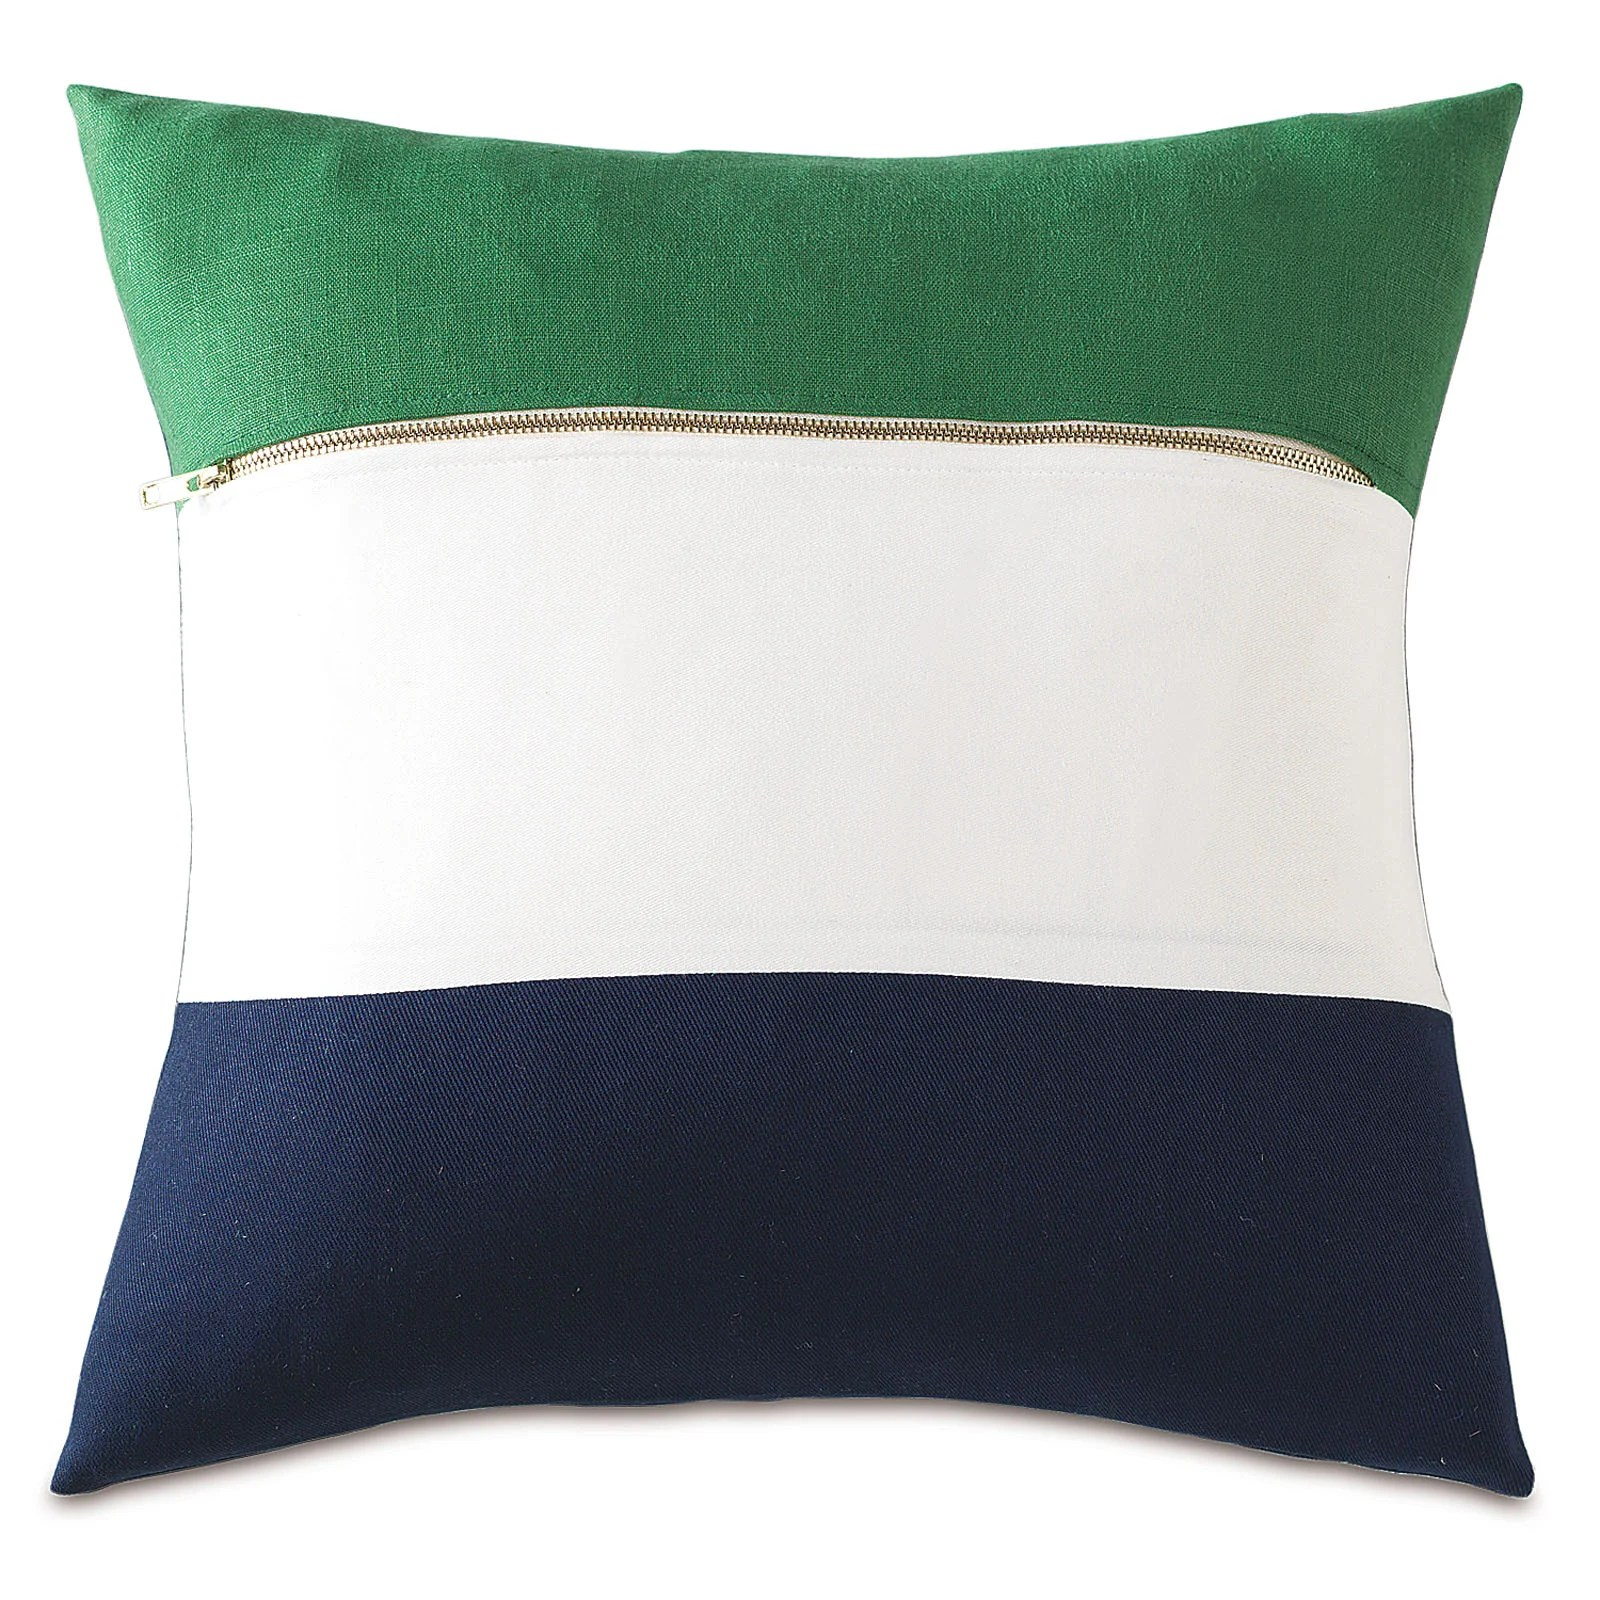 Best Eastern Accents Preppy Pettipang Throw Pillow Reviews This Month